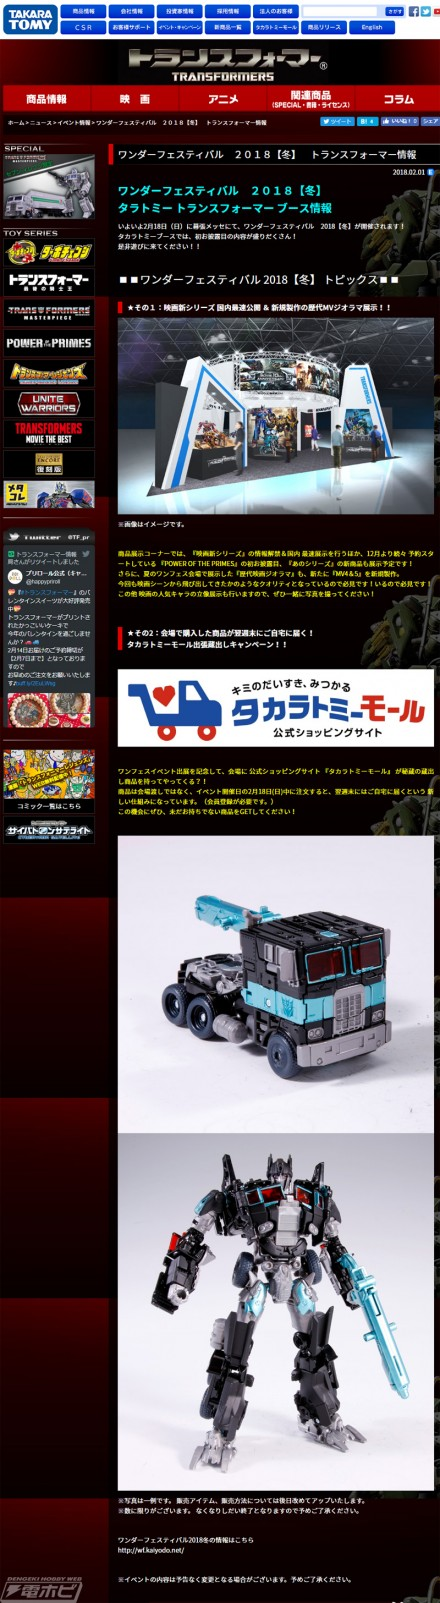 screencapture-tf-takaratomy